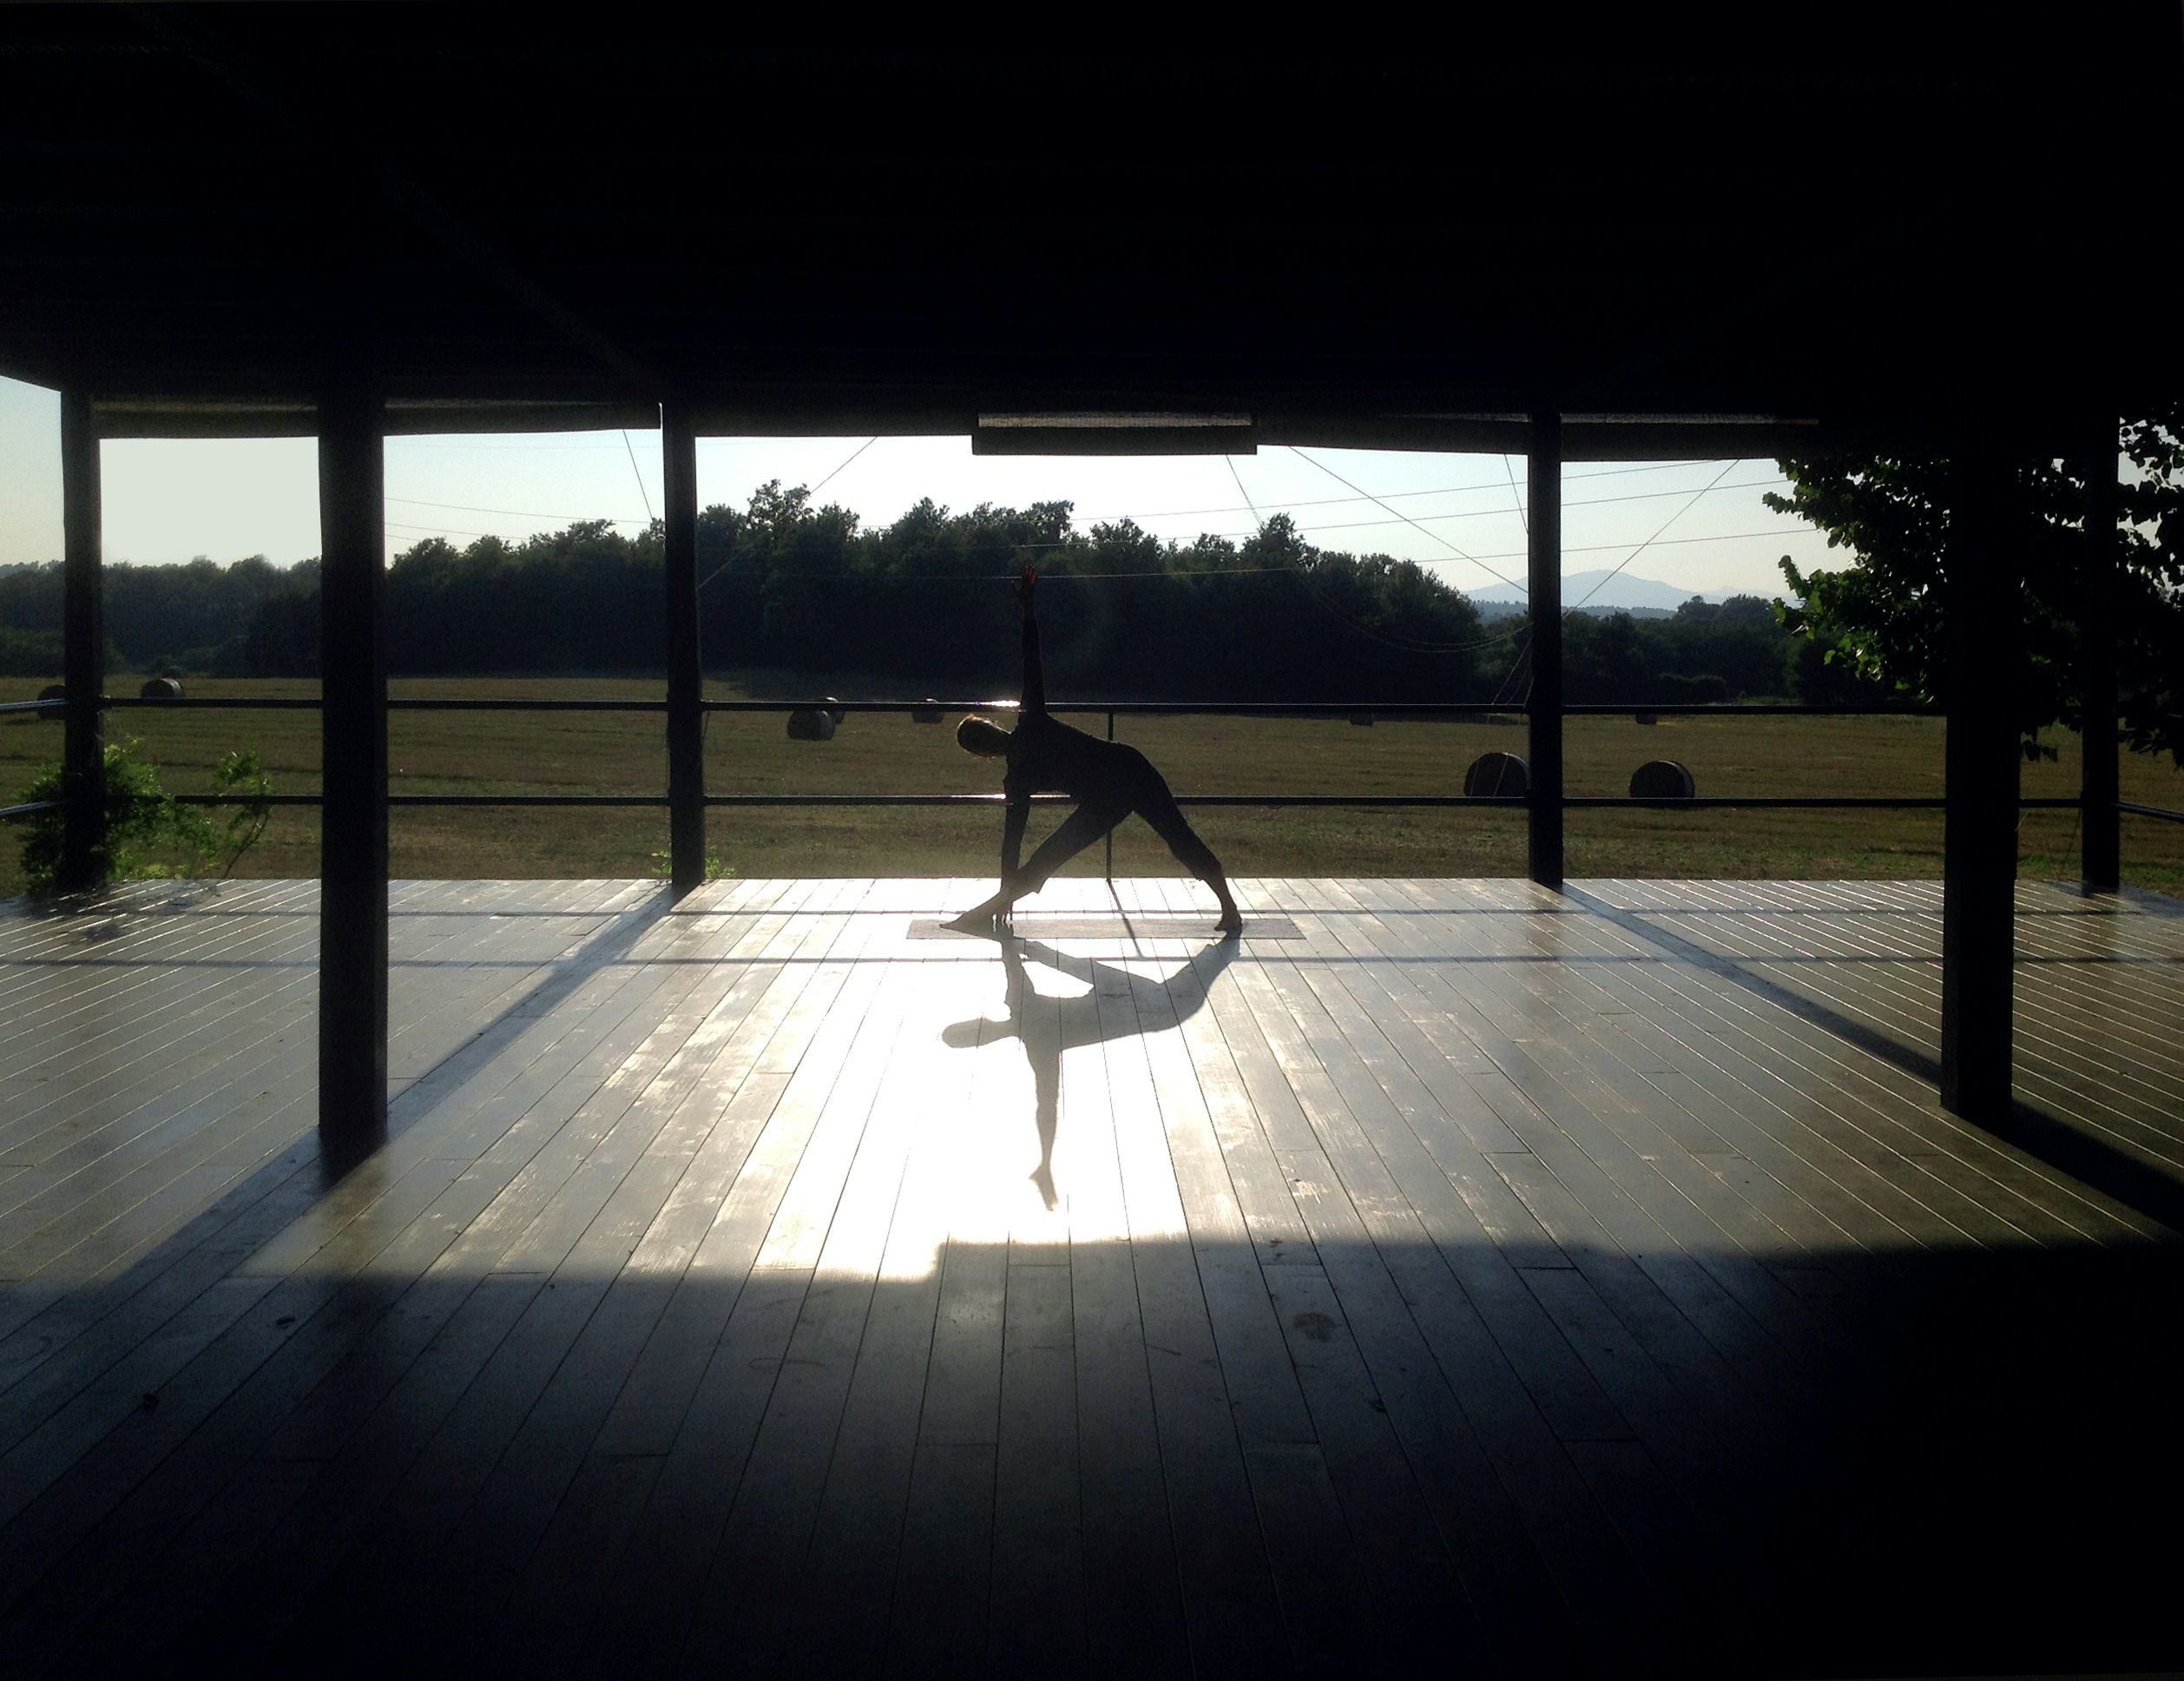 Woman doing yoga in the outdoor yoga area